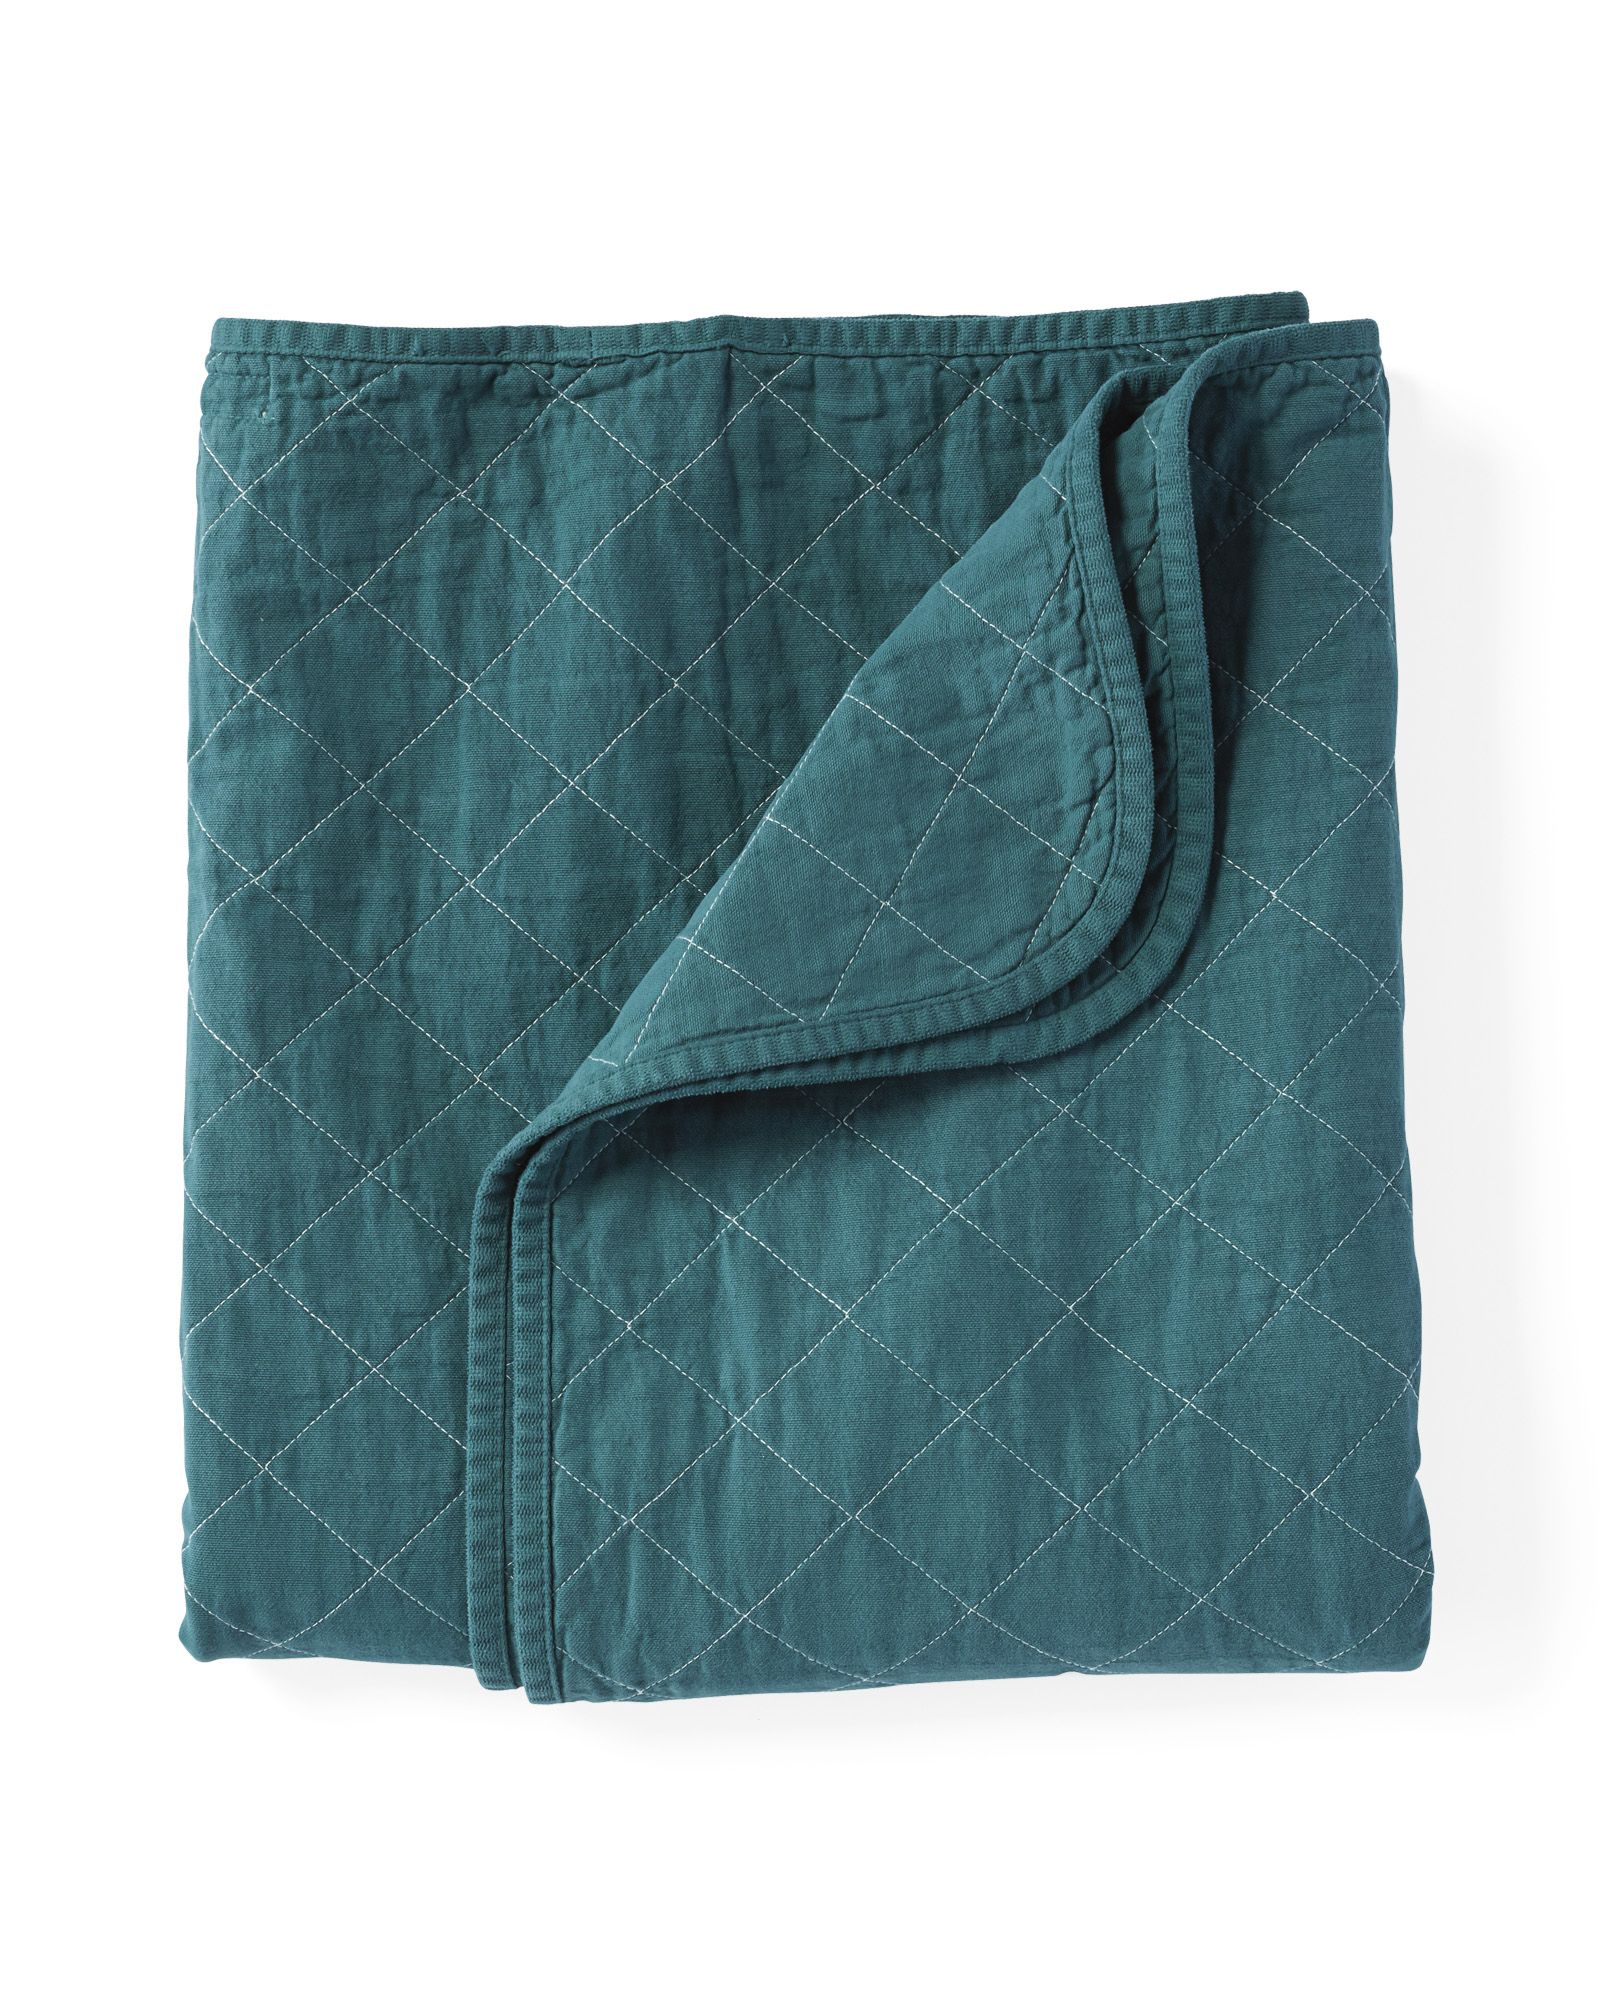 We've long admired Utility Canvas for their simple, versatile designs that don't fall short on style. This is no exception. Quilted of cotton canvas, it's super soft and durable. Plus, it's garment-dyed, so the colors are especially vibrant. Keep it at the foot of the bed or take it outside on chilly nights – it's made to be cherished indoors and out.